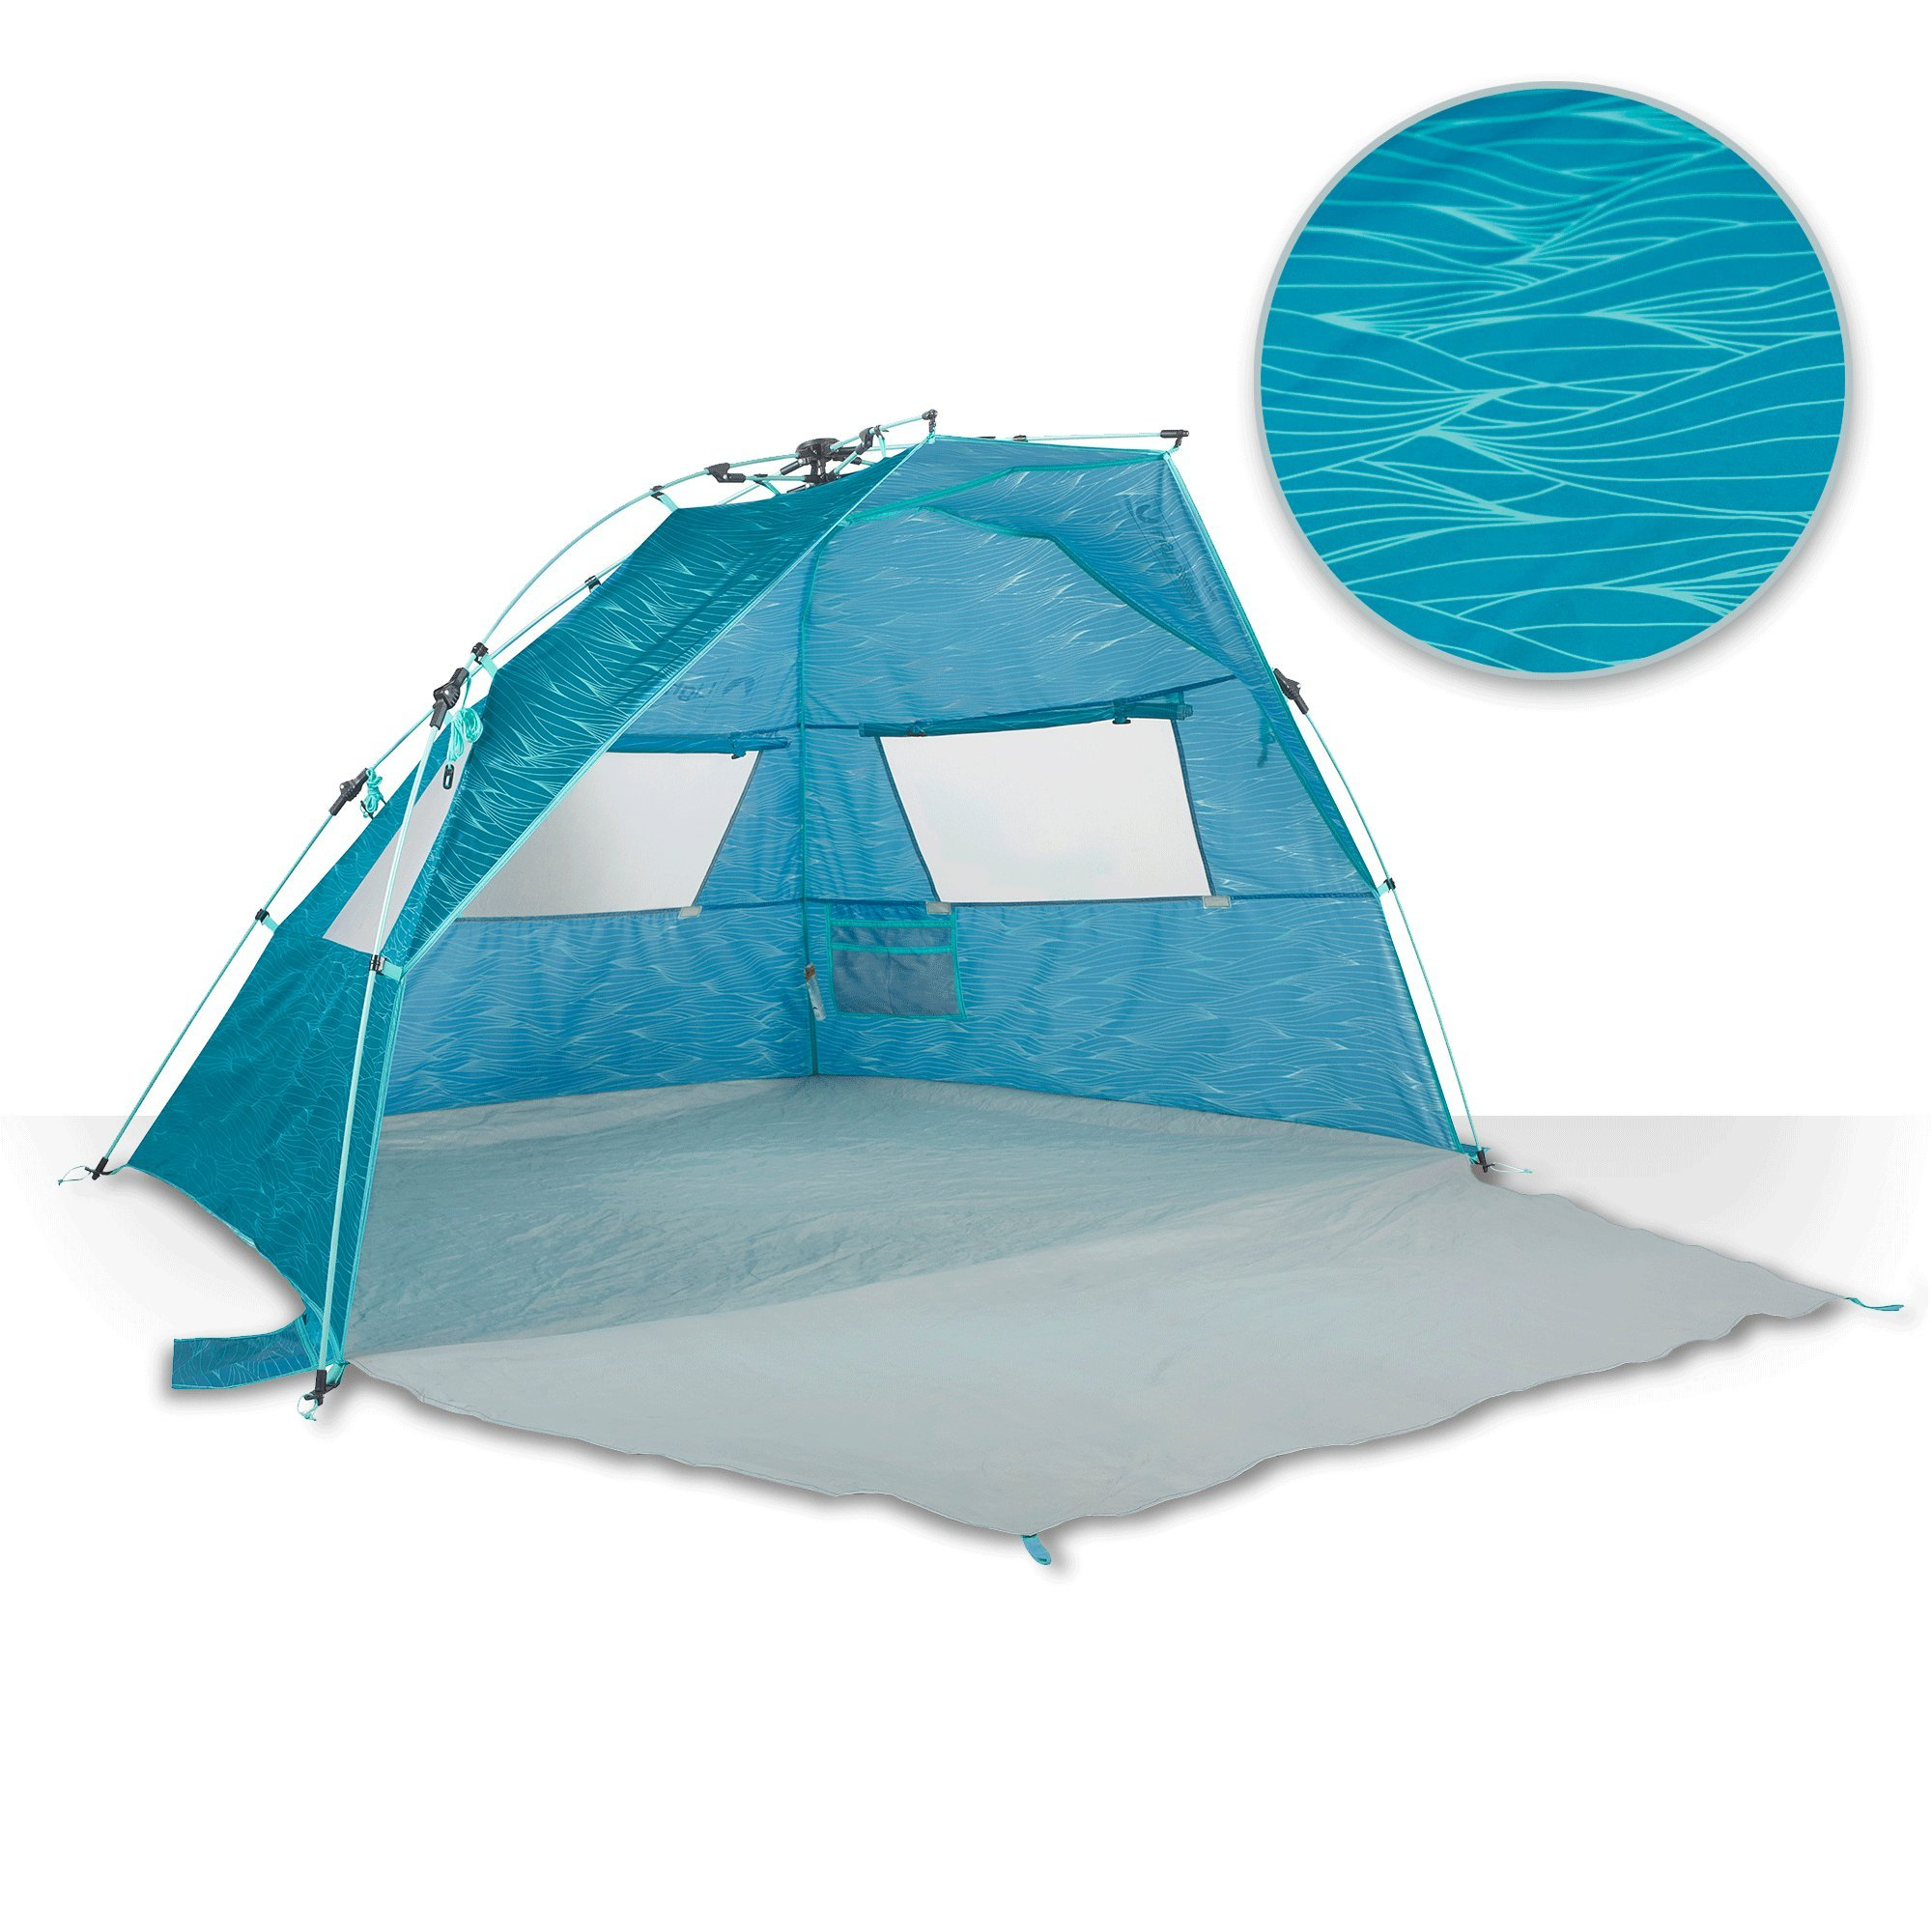 Lightspeed Outdoors Quick Cabana Beach Tent Sun Shelter, Aqua Teal Waves by Lightspeed Outdoors